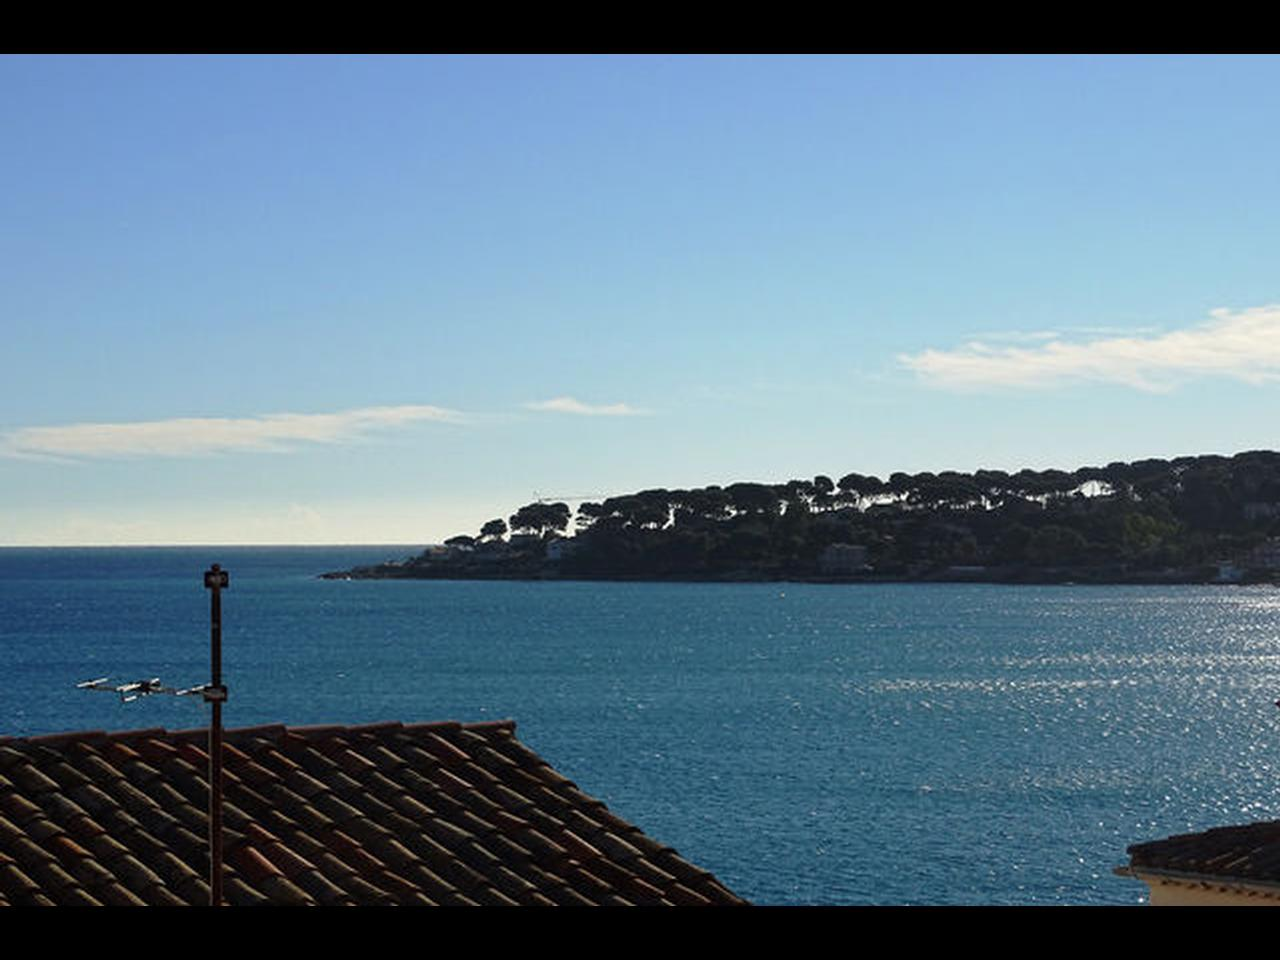 Immobilier nice vue mer appartement antibes appartement for Immobilier atypique nice